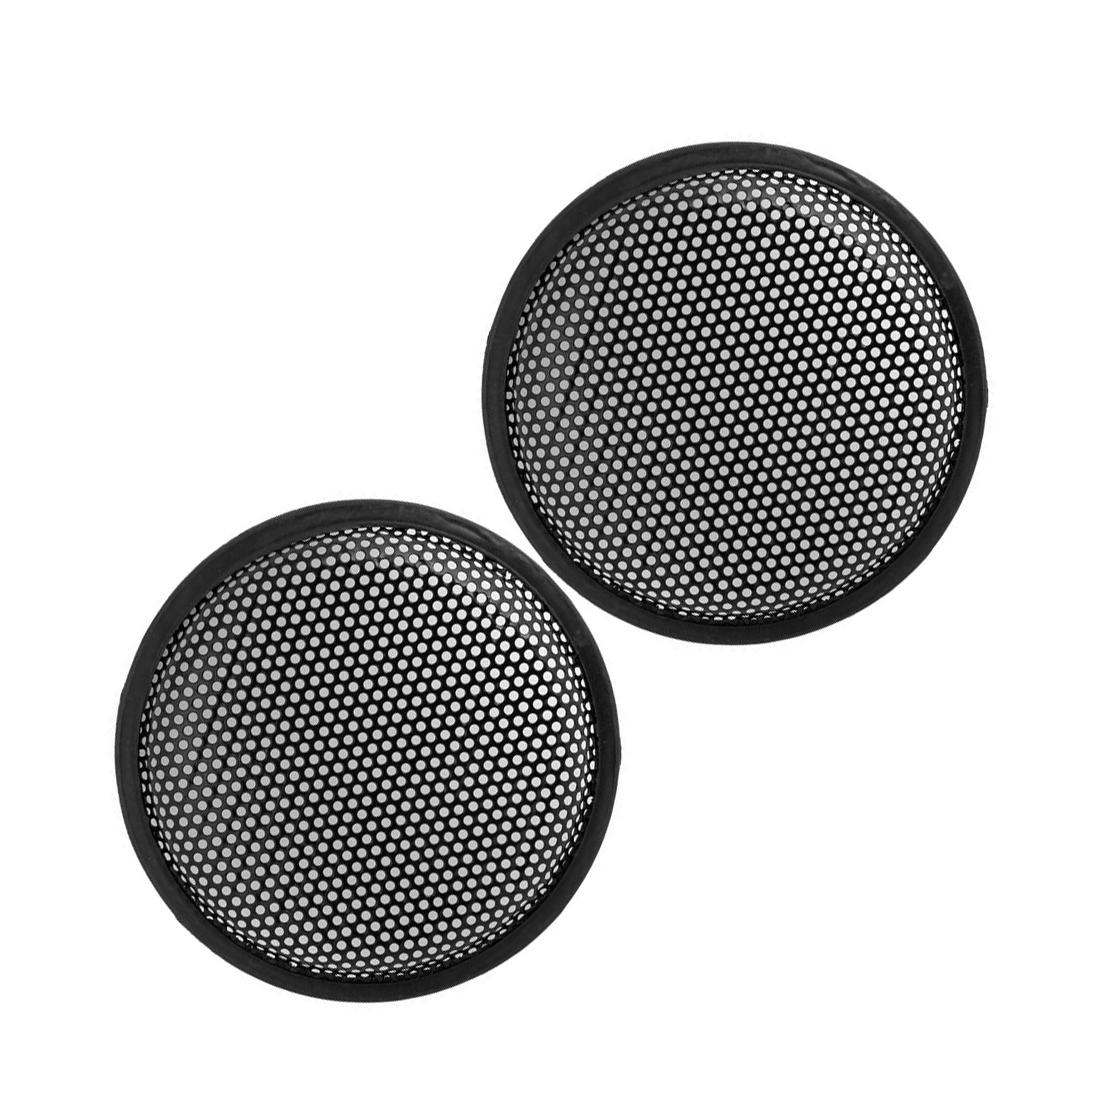 2018 Whole Top Deals 8 5 Dia Metal Mesh Round Car Woofer Cover Speaker Grill Black From Fava 39 0 Dhgate Com